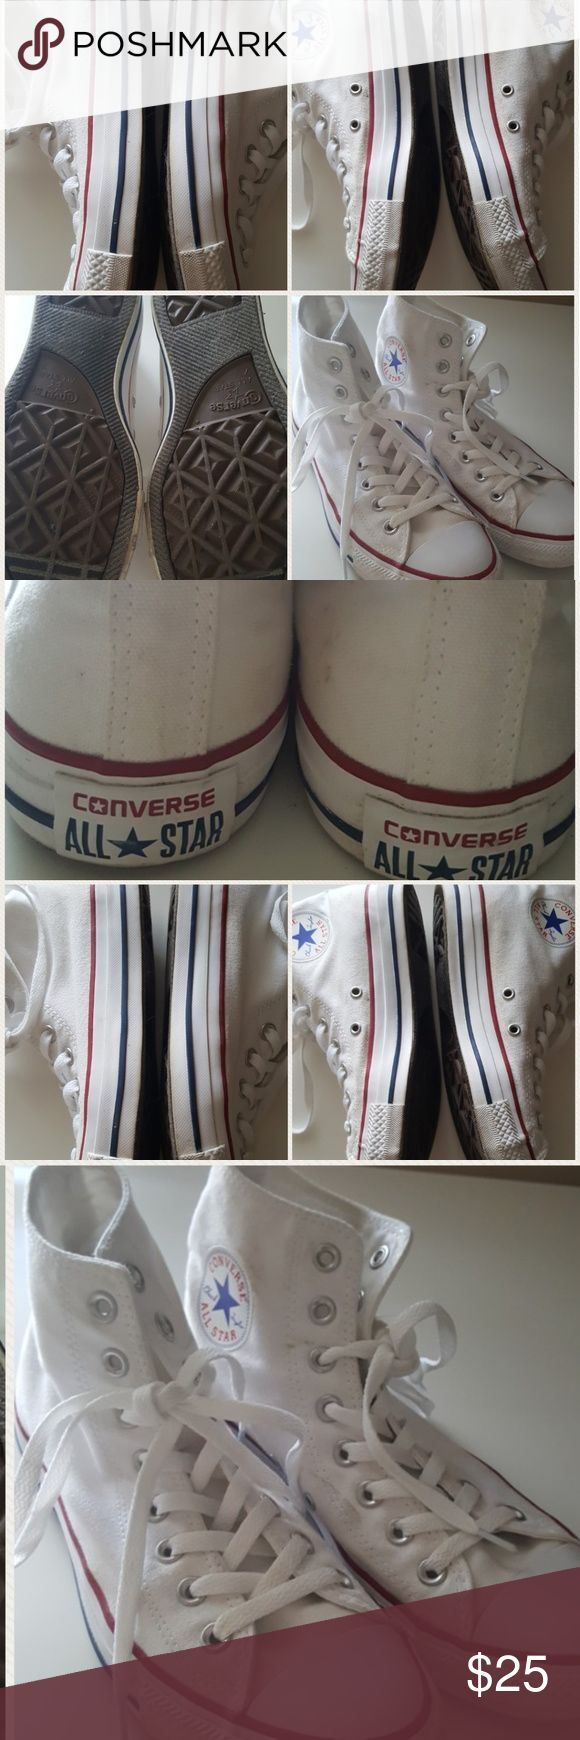 White Converse Chuck Taylor's White converse Chuck Taylor hi tops. 7m 9w. Great condition.  Bought on here and just never grab them.  Please understand these are not new, but worn. They may just need to be thrown in the wash. Be sure to follow me because I'll be uploading hundreds of items over the next few days. Please ask me anything. I'll be happy to help Converse Shoes Sneakers